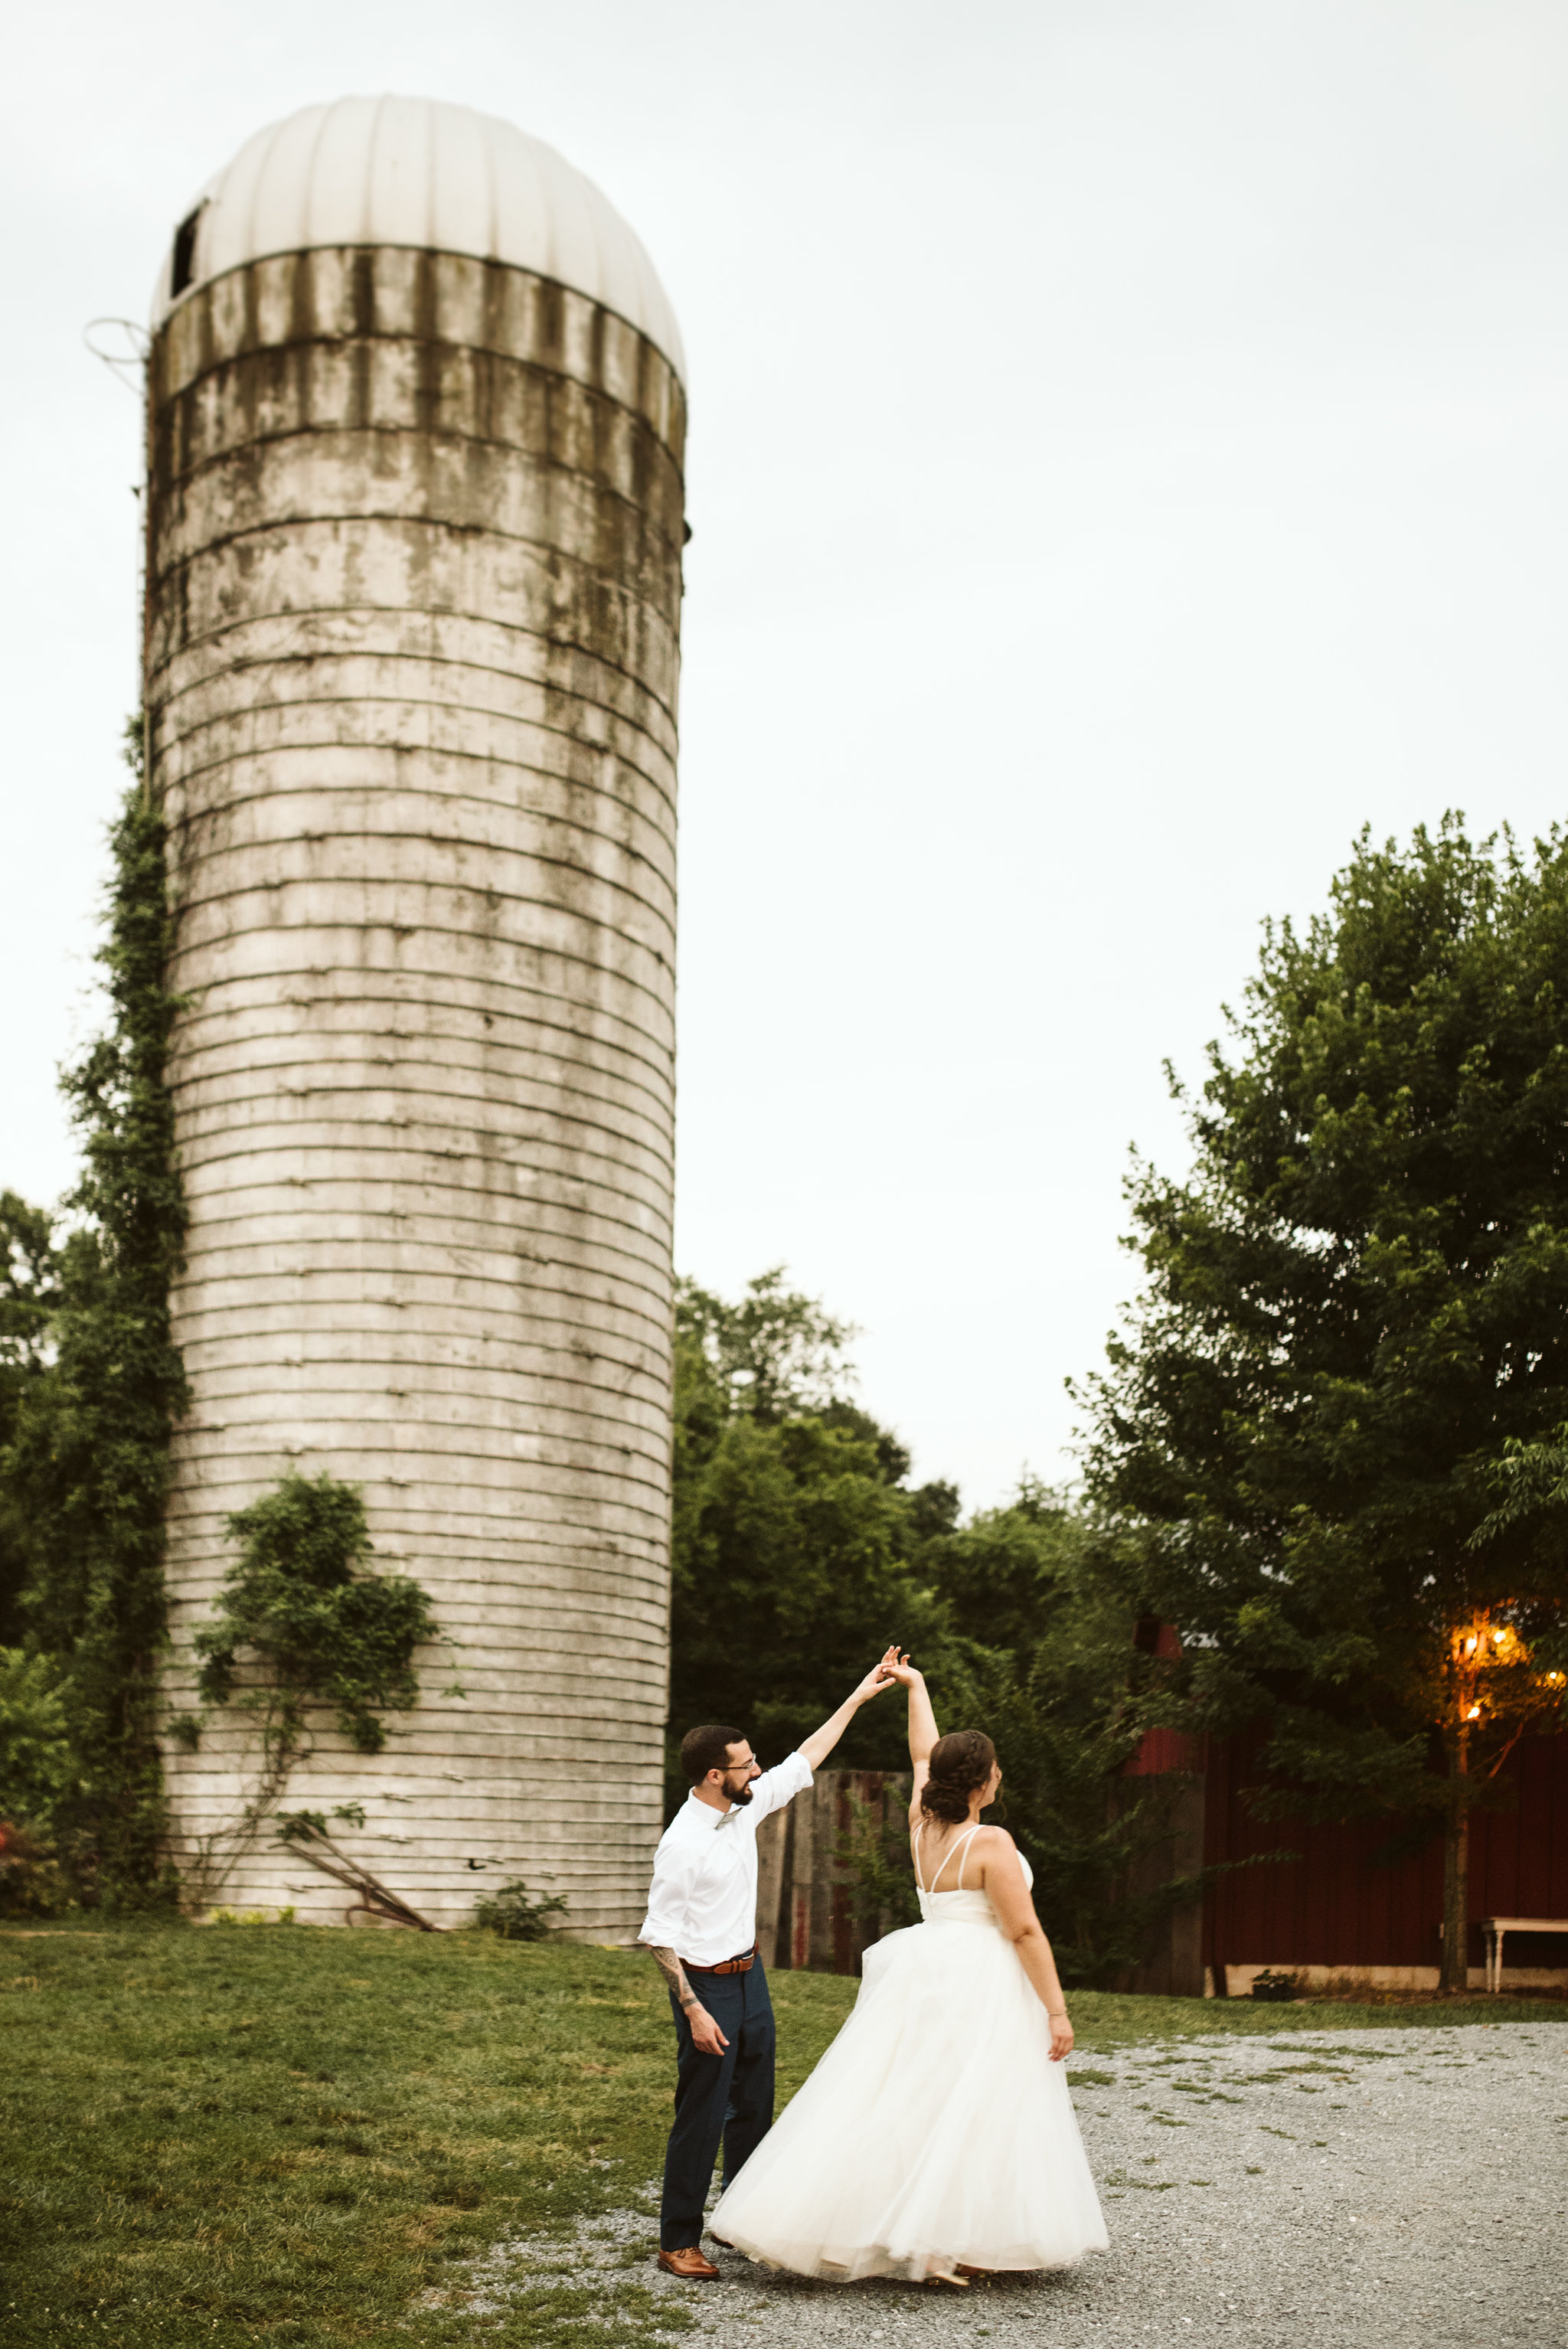 Rocklands Farm, Maryland, Intimate Wedding, Baltimore Wedding Photographer, Sungold Flower Co, Rustic, Romantic, Barn Wedding, Bride and Groom Dancing Outside by Silo